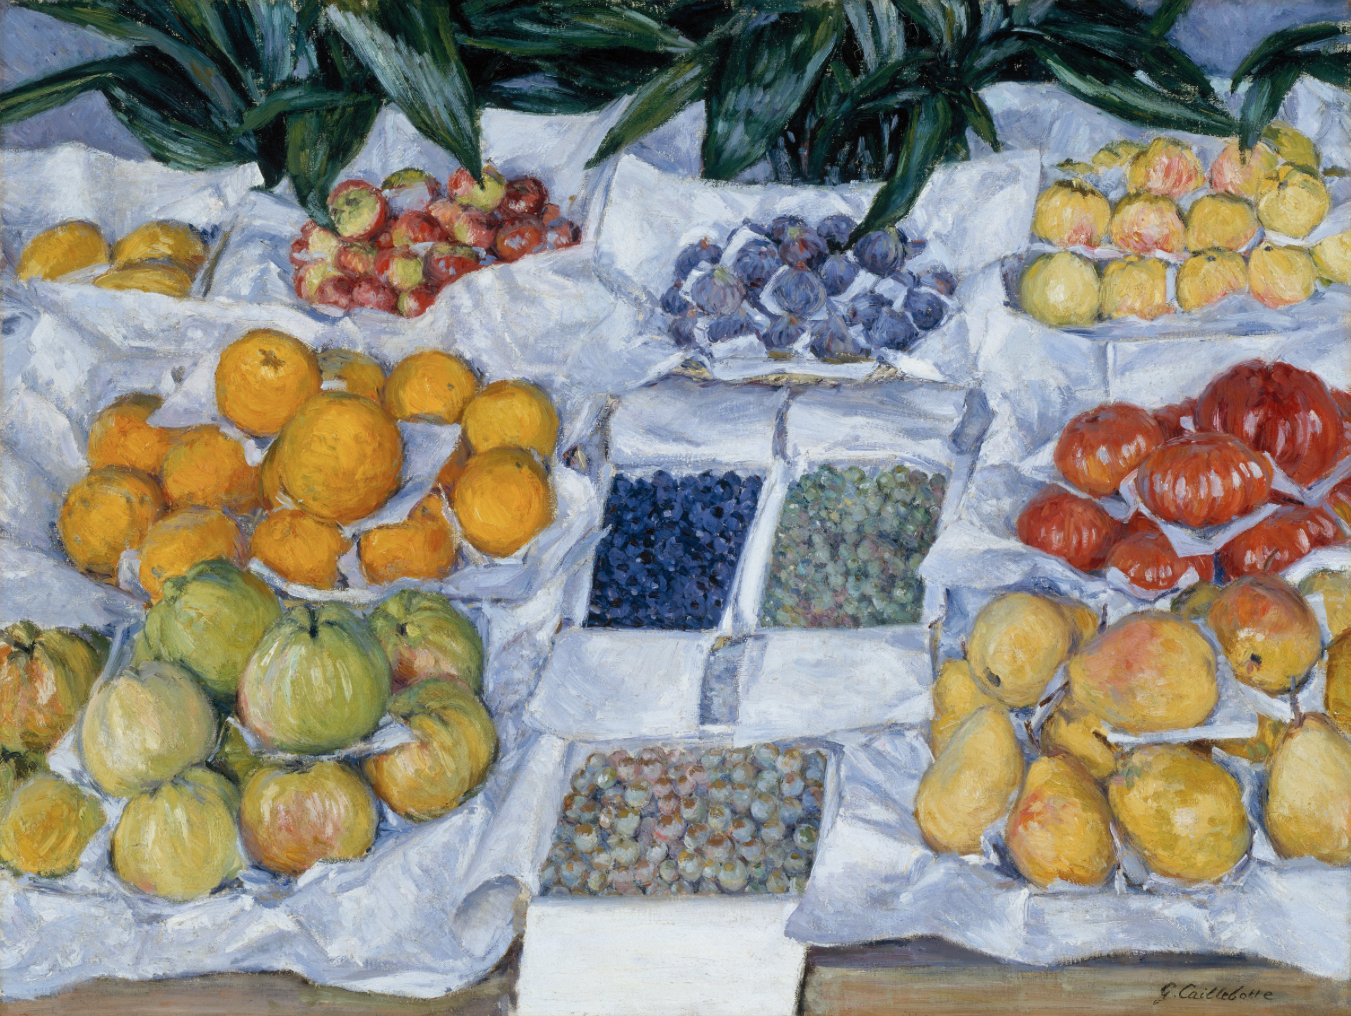 Fruit Displayed on a Stand, Gustave Caillebotte, 1881-82.